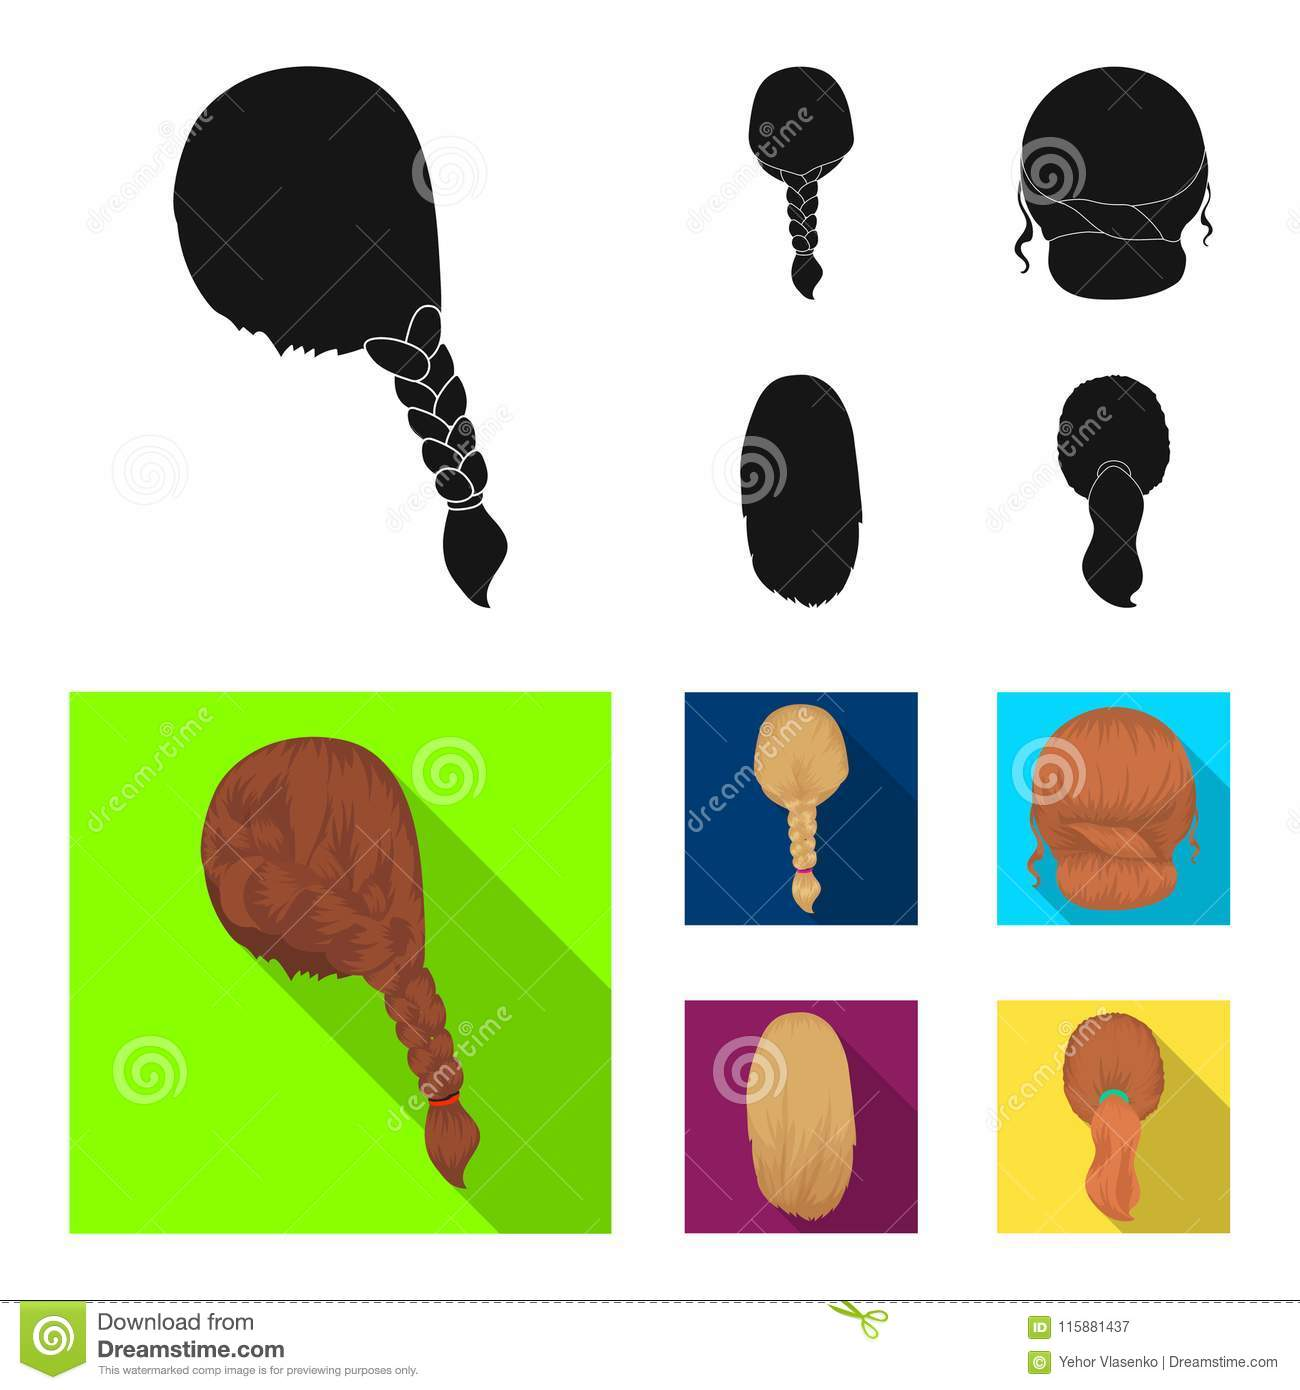 Light braid, fish tail and other types of hairstyles. Back hairstyle set collection icons in black, flat style vector